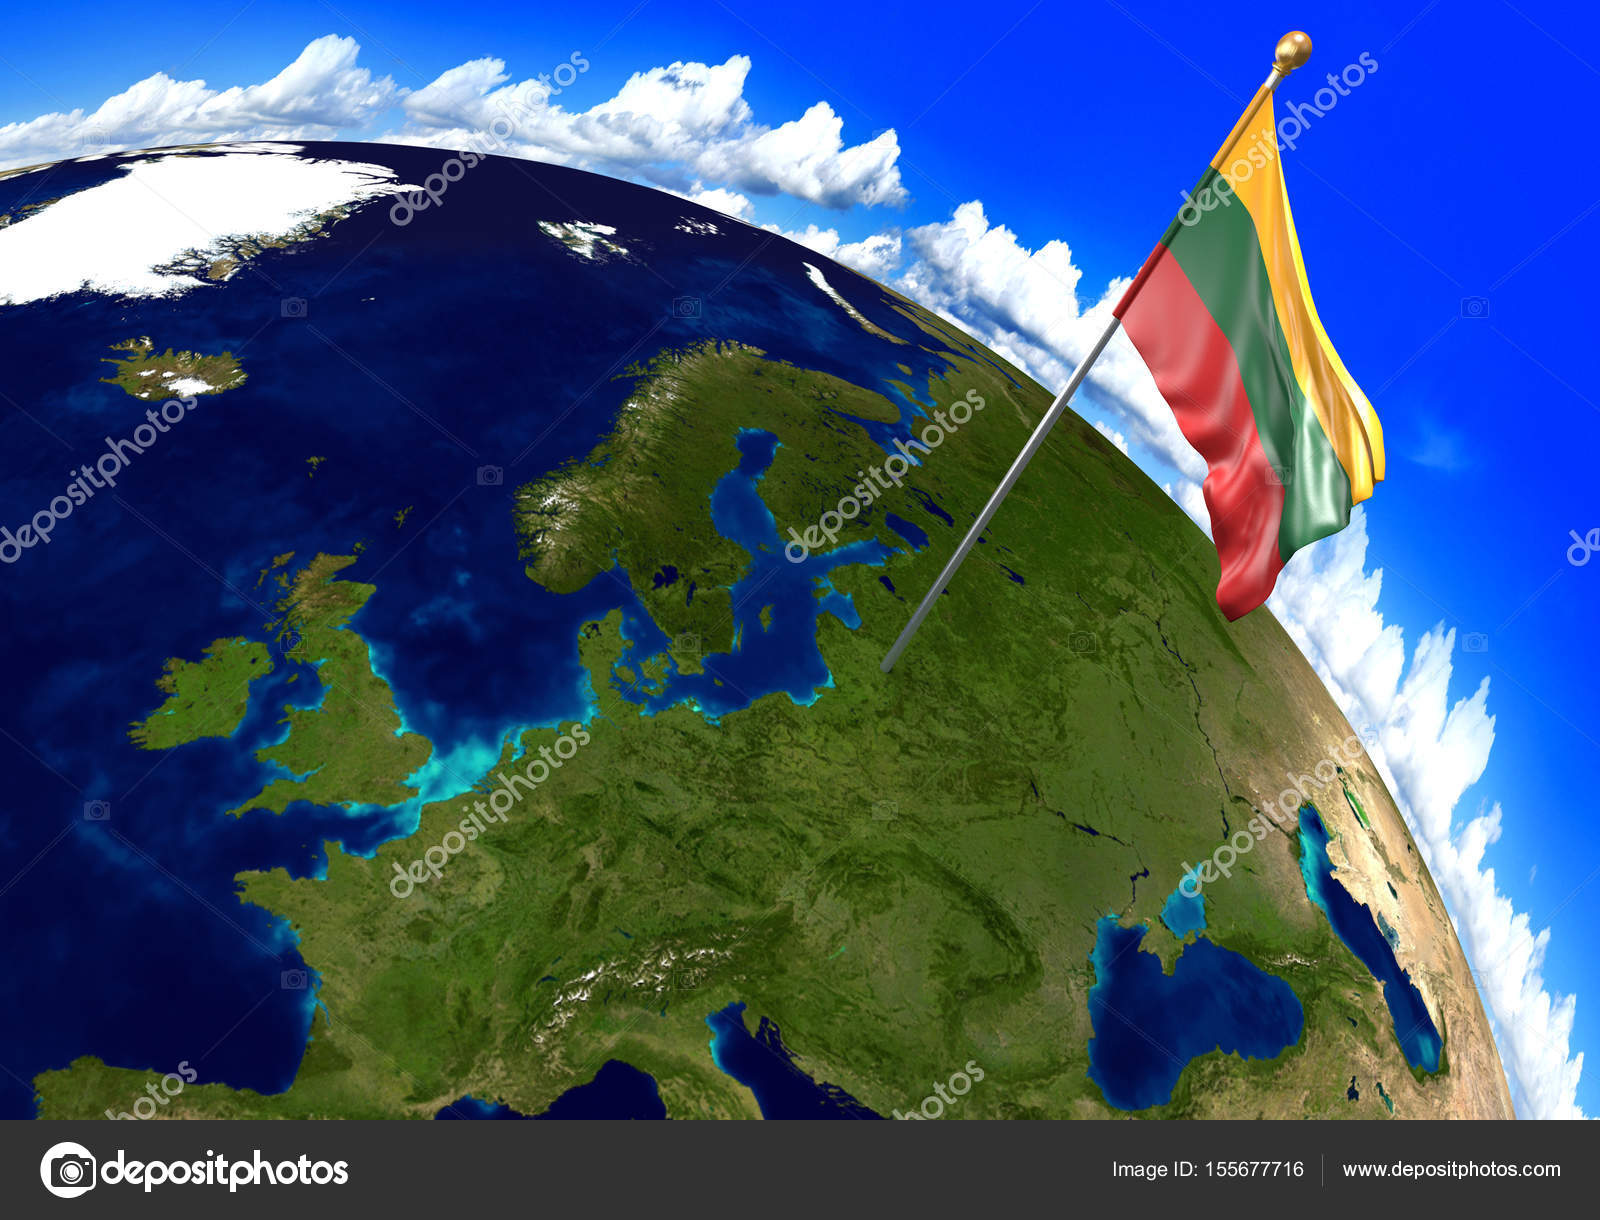 Lithuania national flag marking the country location on world map